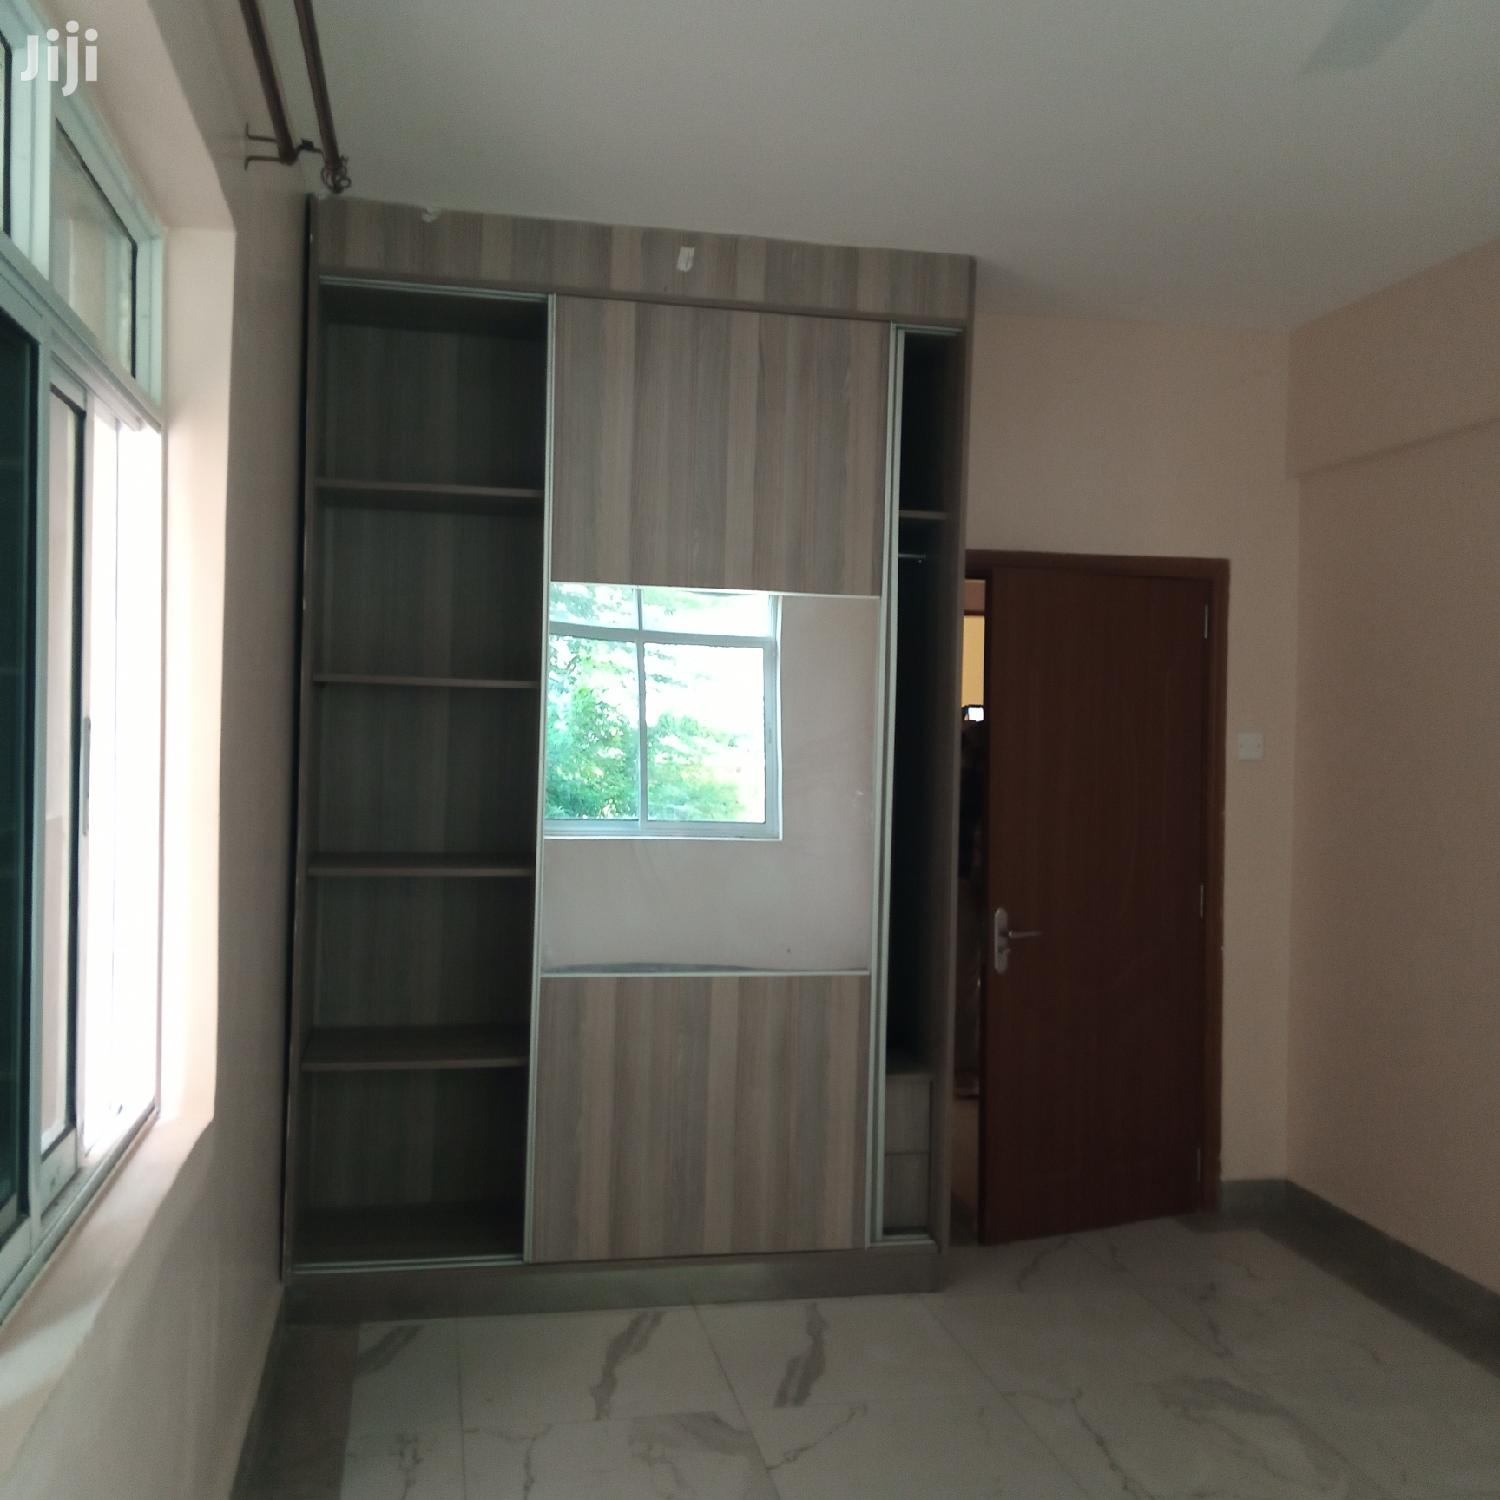 Magnificent 3 Bedroom For Sale | Houses & Apartments For Sale for sale in Tudor, Mombasa, Kenya